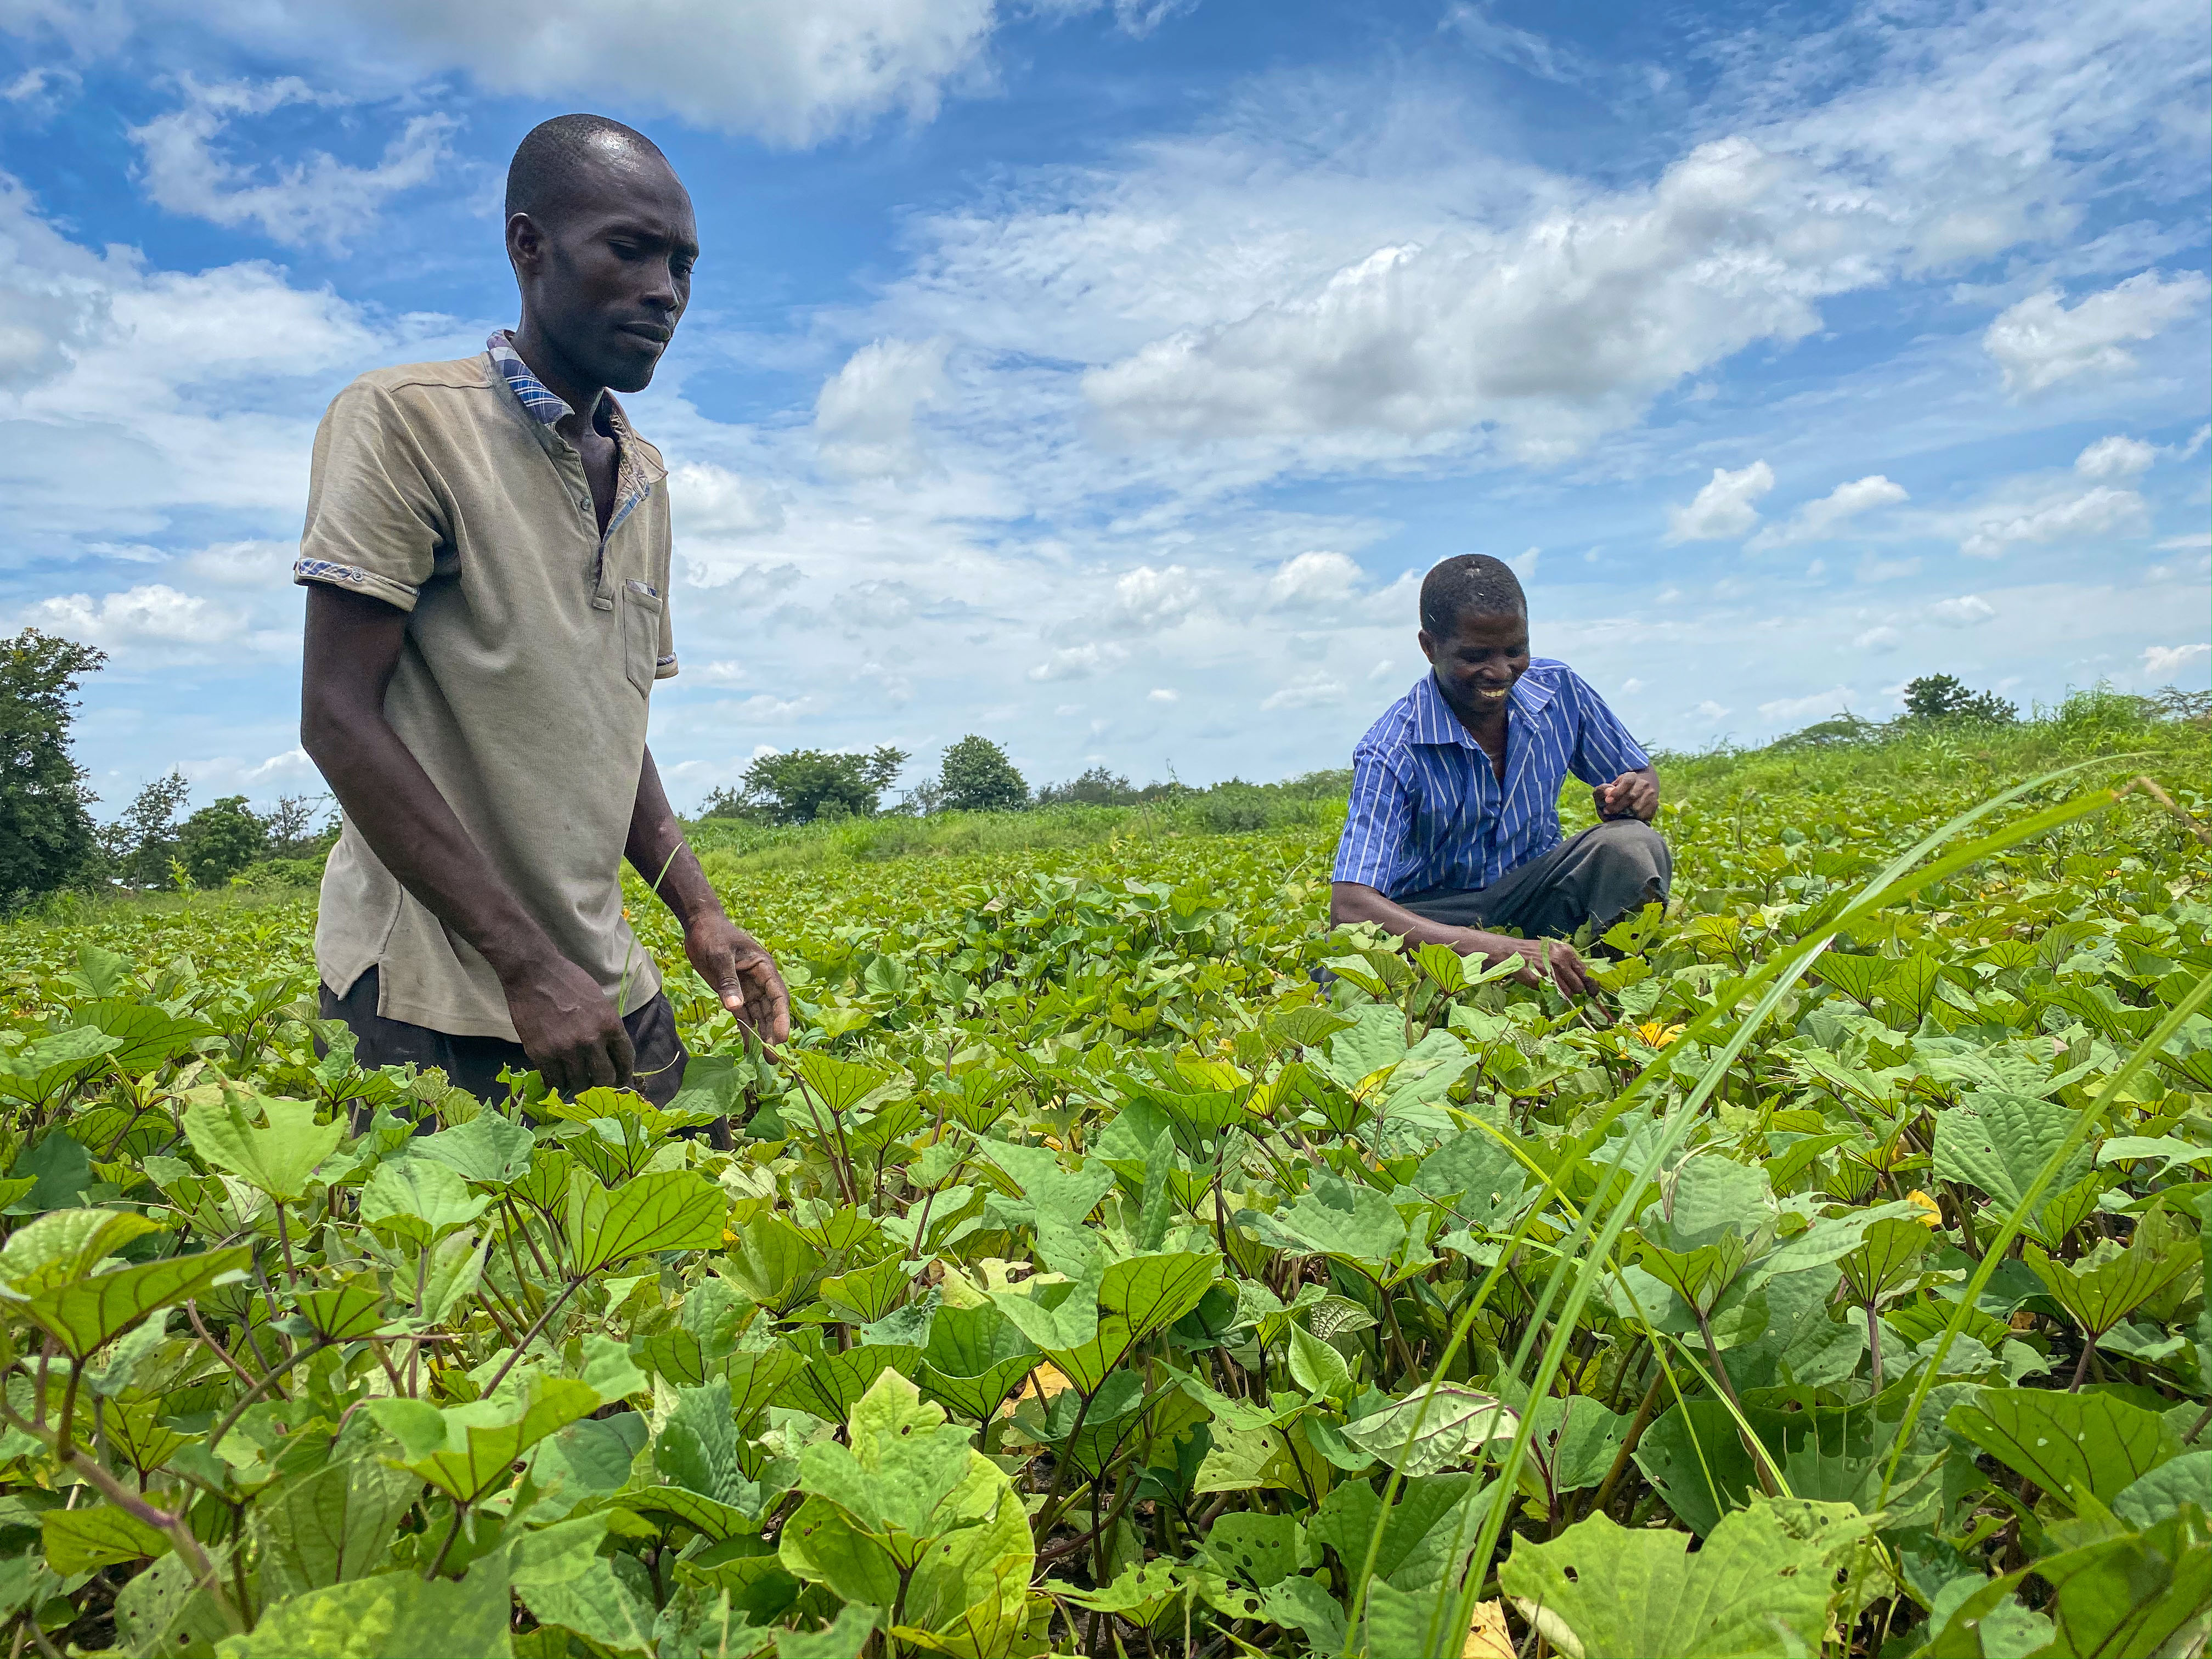 The Fund will increase investments in Malawi's agro-industry and value chains.